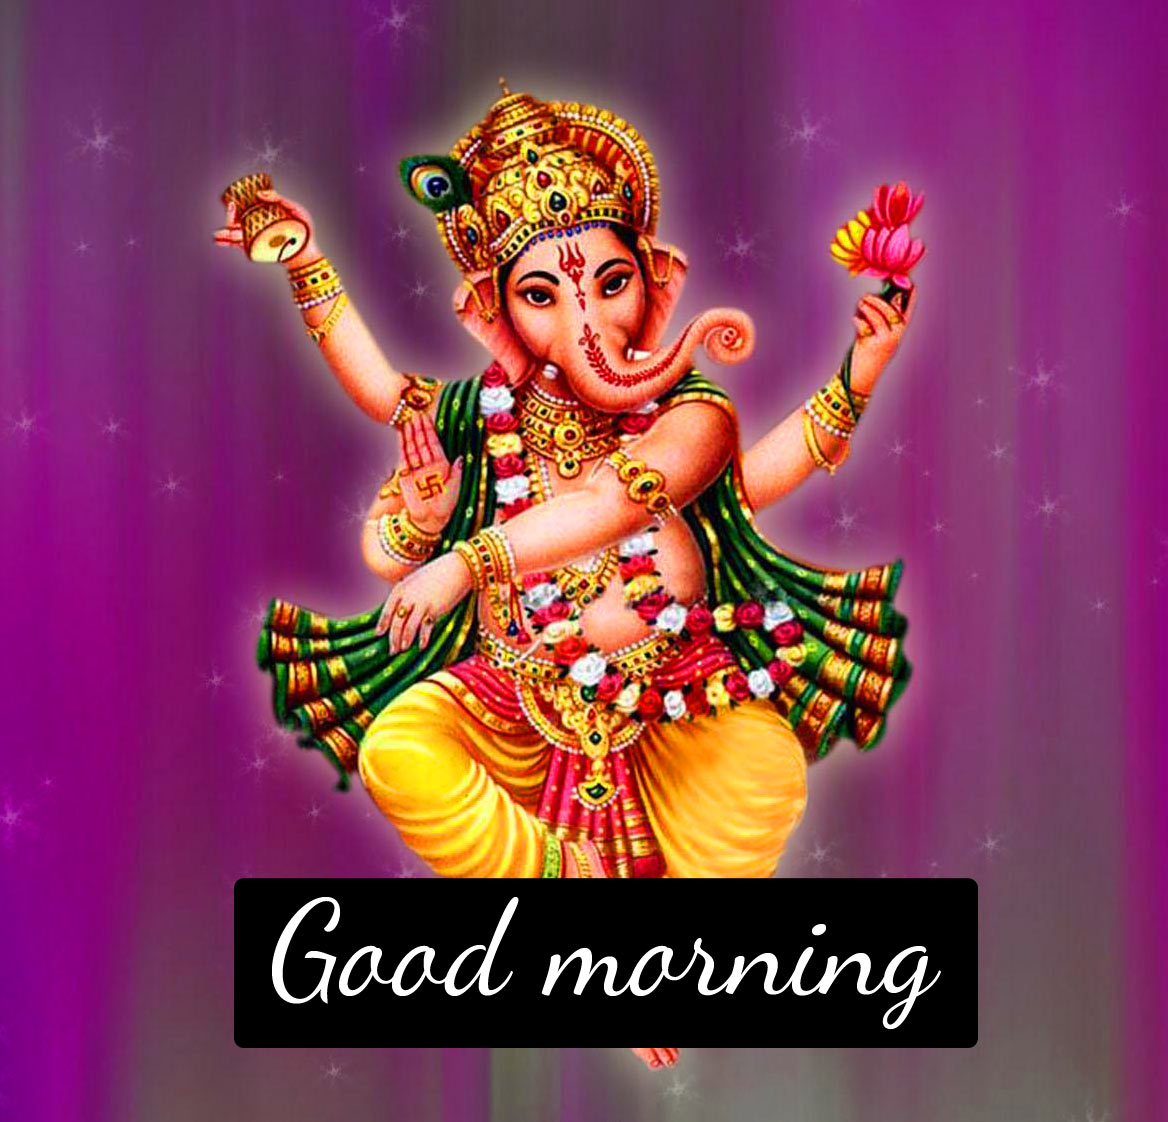 God Ganesha good morning Images Pics